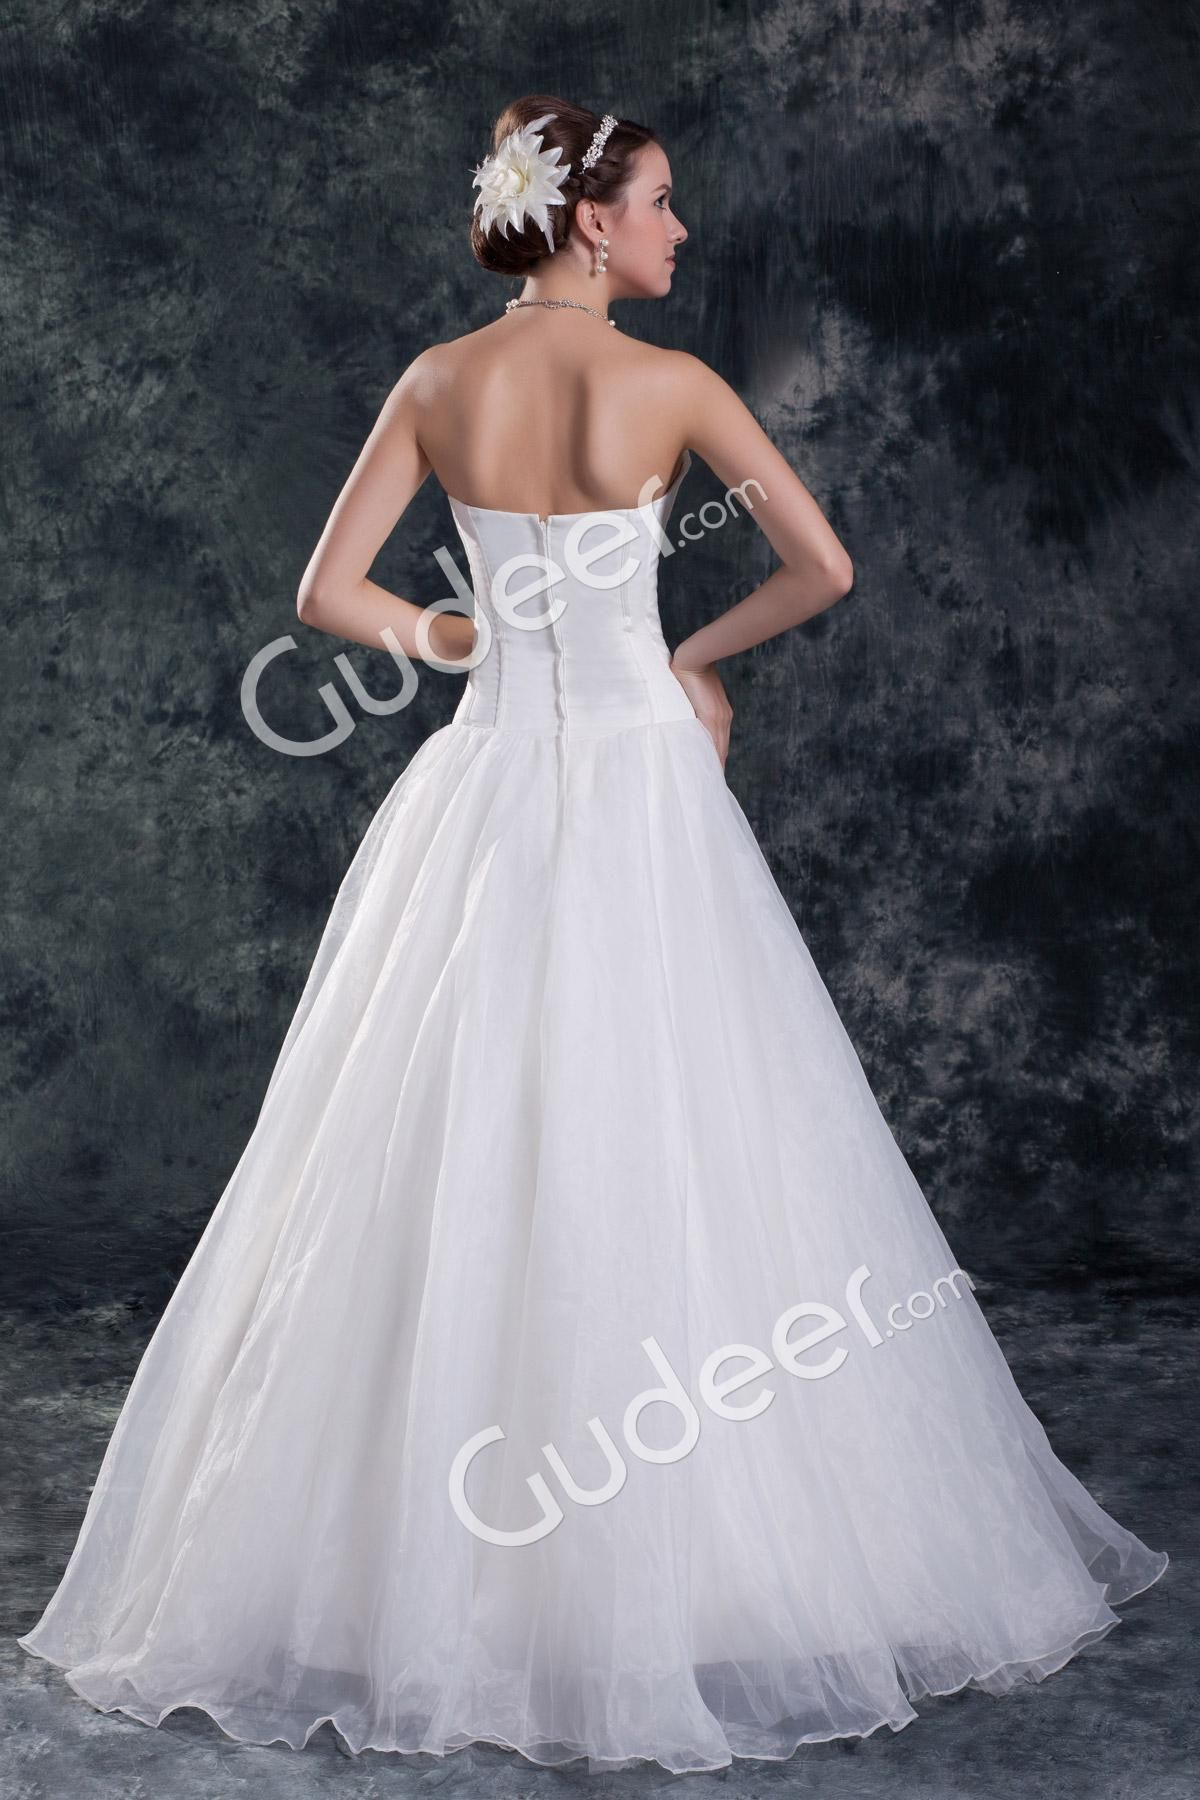 Simple satin and tulle bridal ball gown with strapless sweetheart